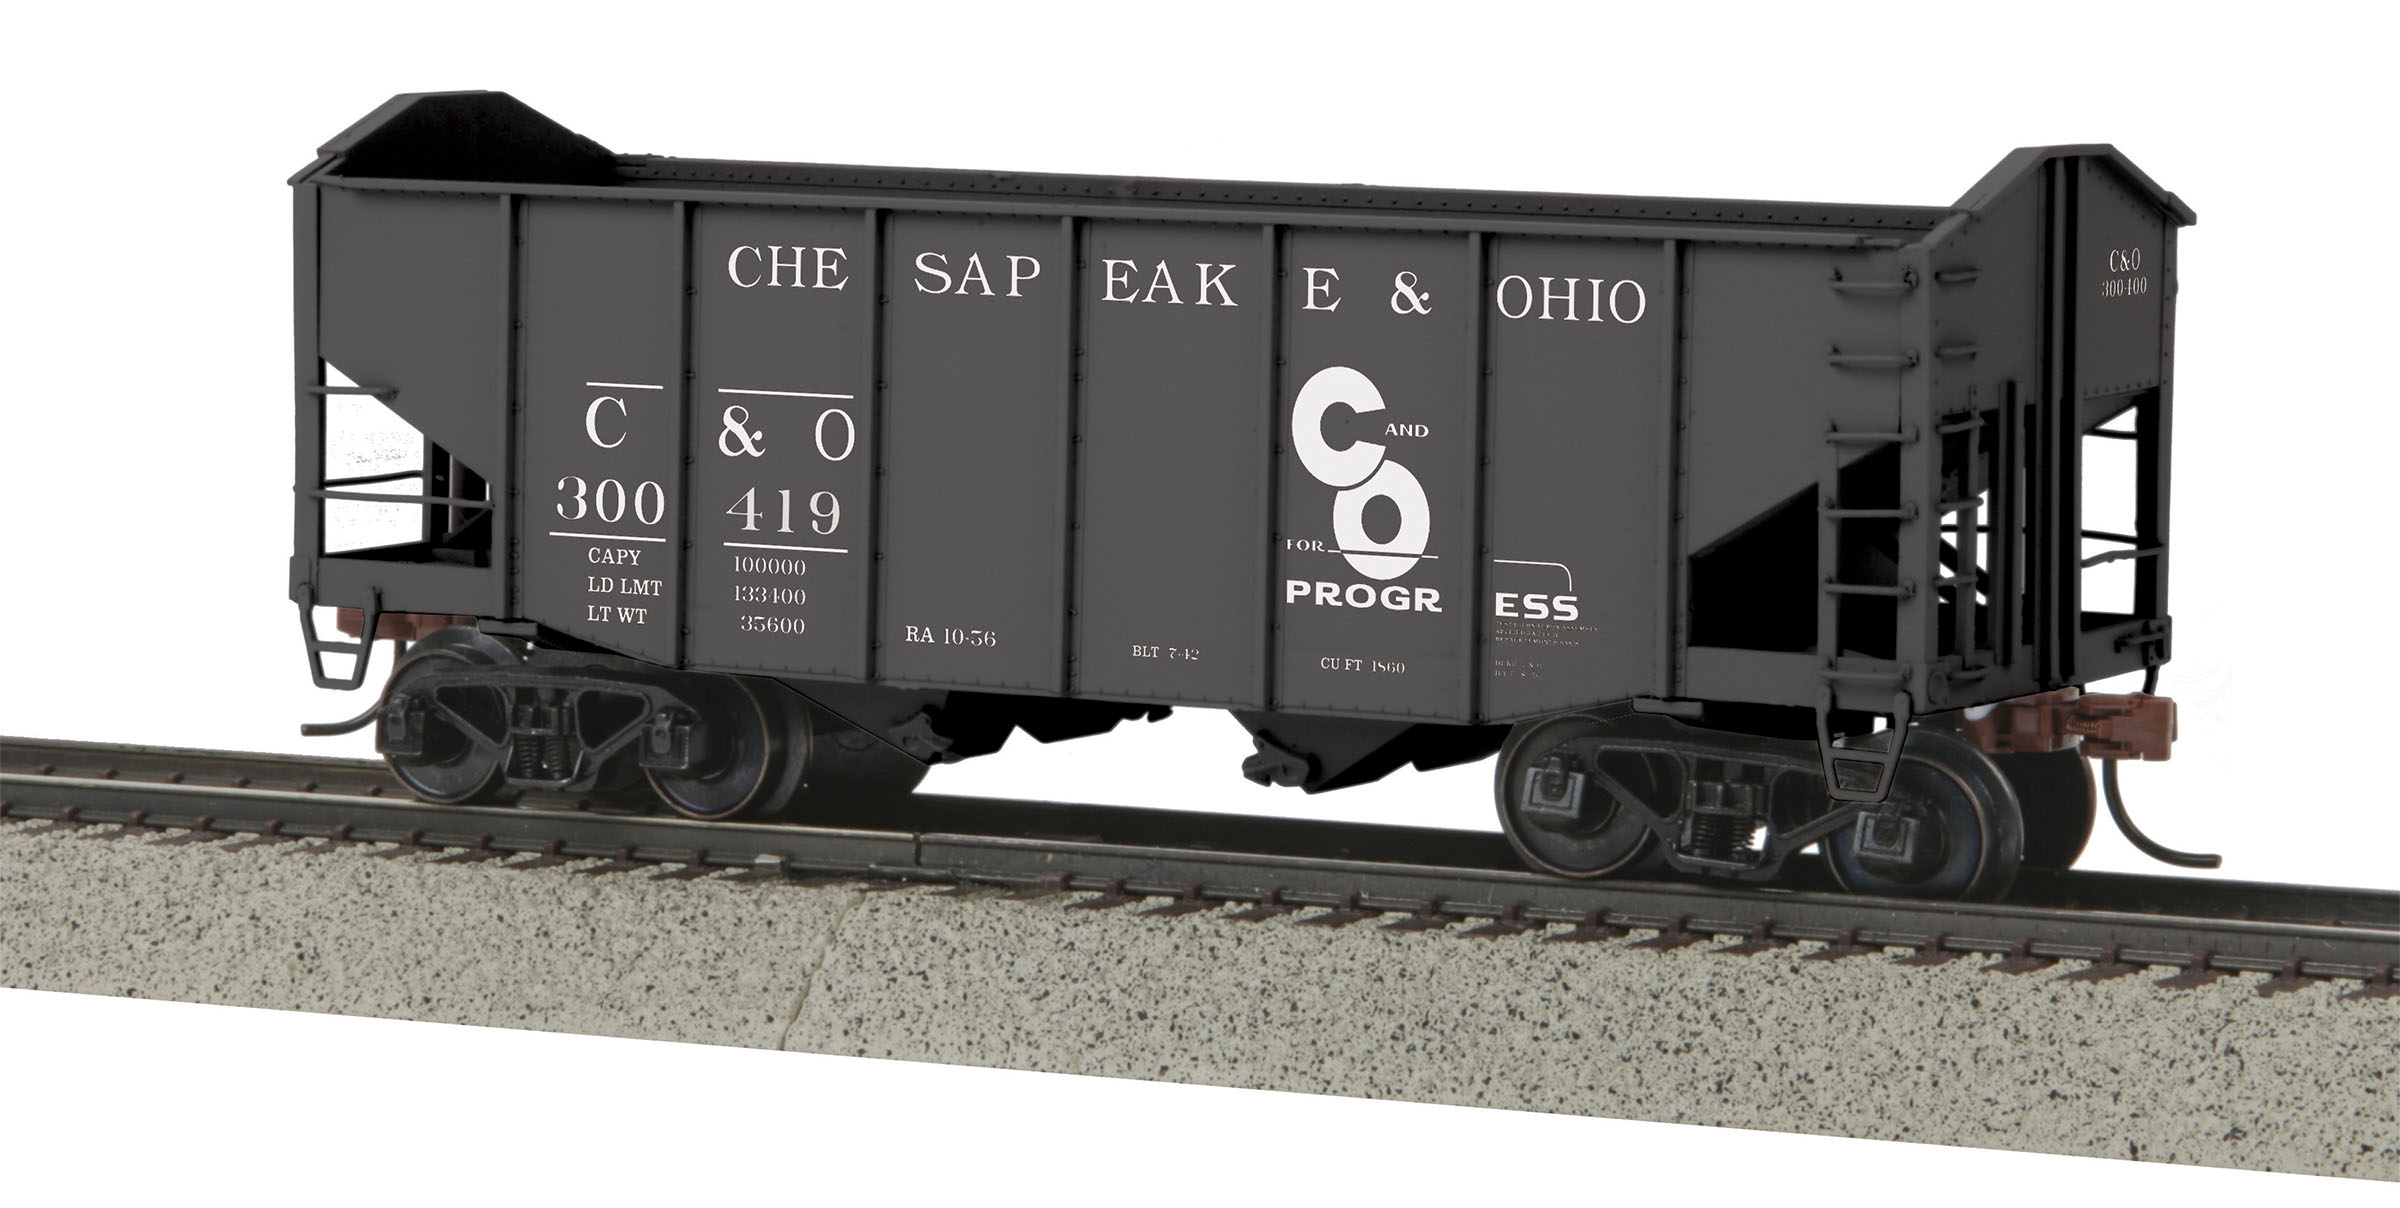 MTH 3575072 2Bay Fish Belly Hopper Car Scale Wheel C&O #300400